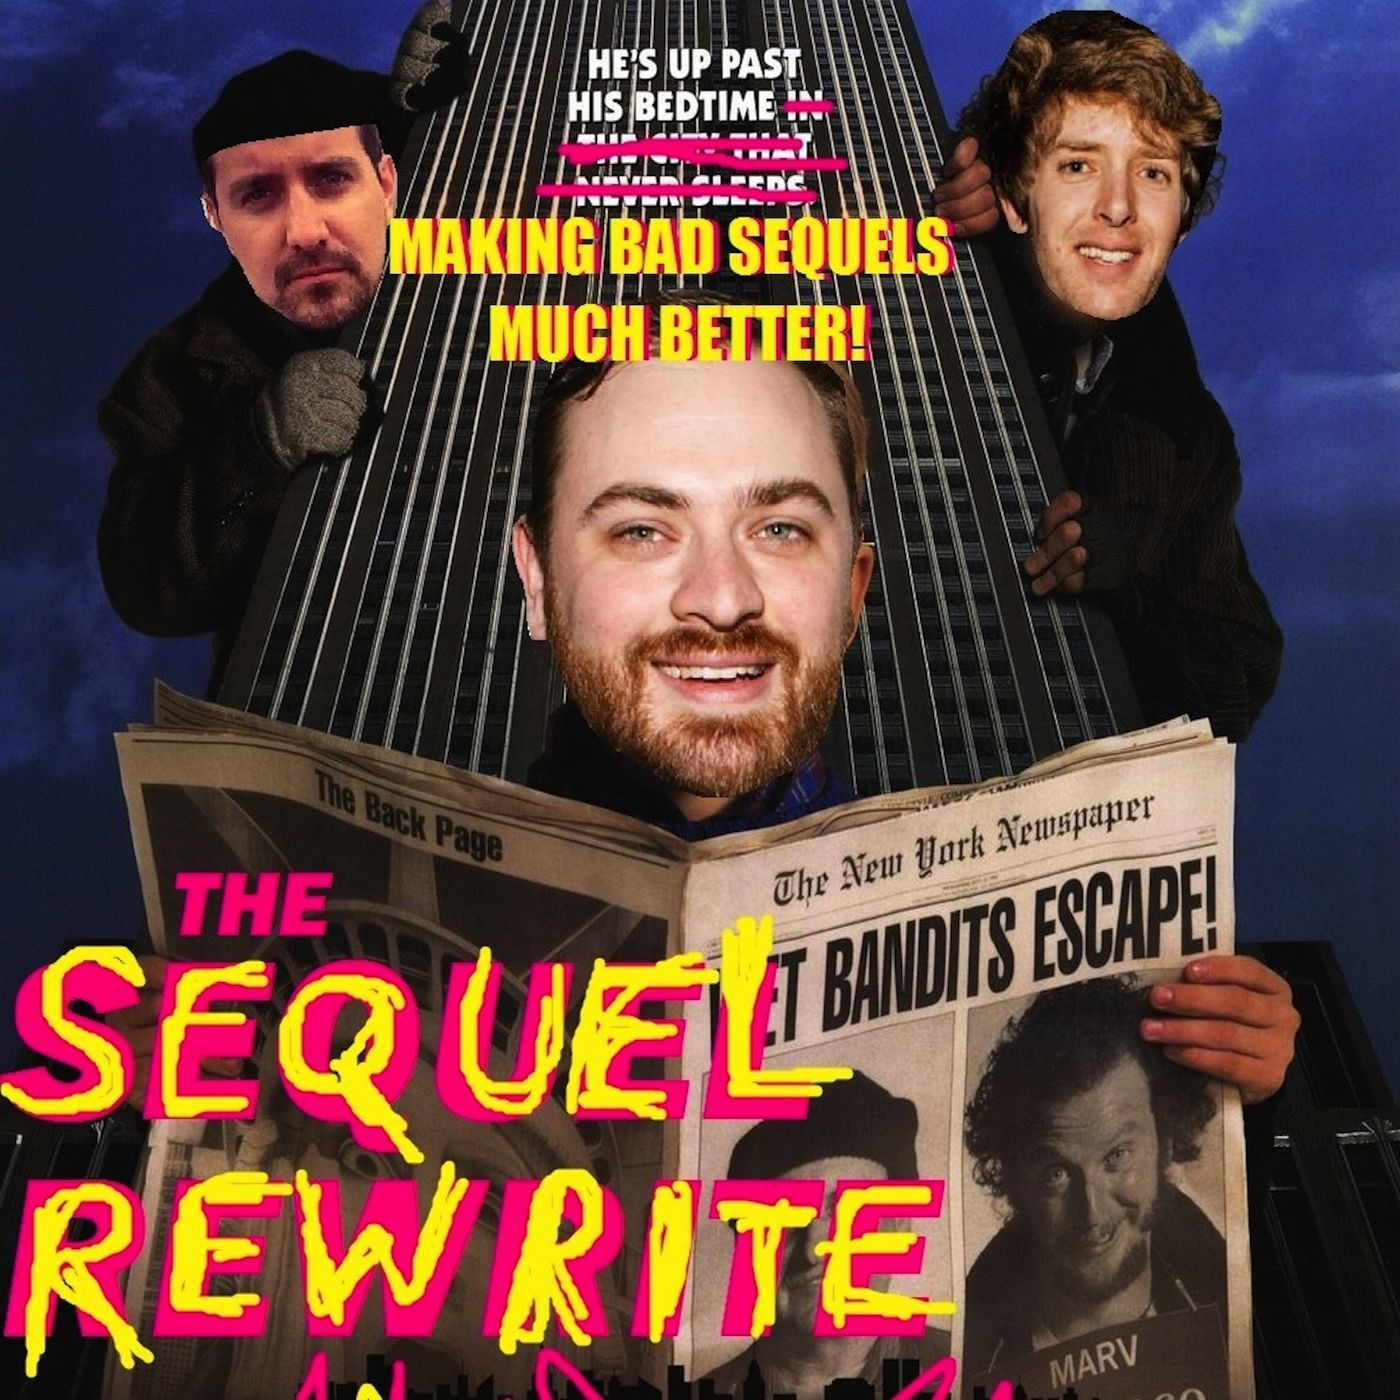 Sex and the City 2 (Live Rewrite!)